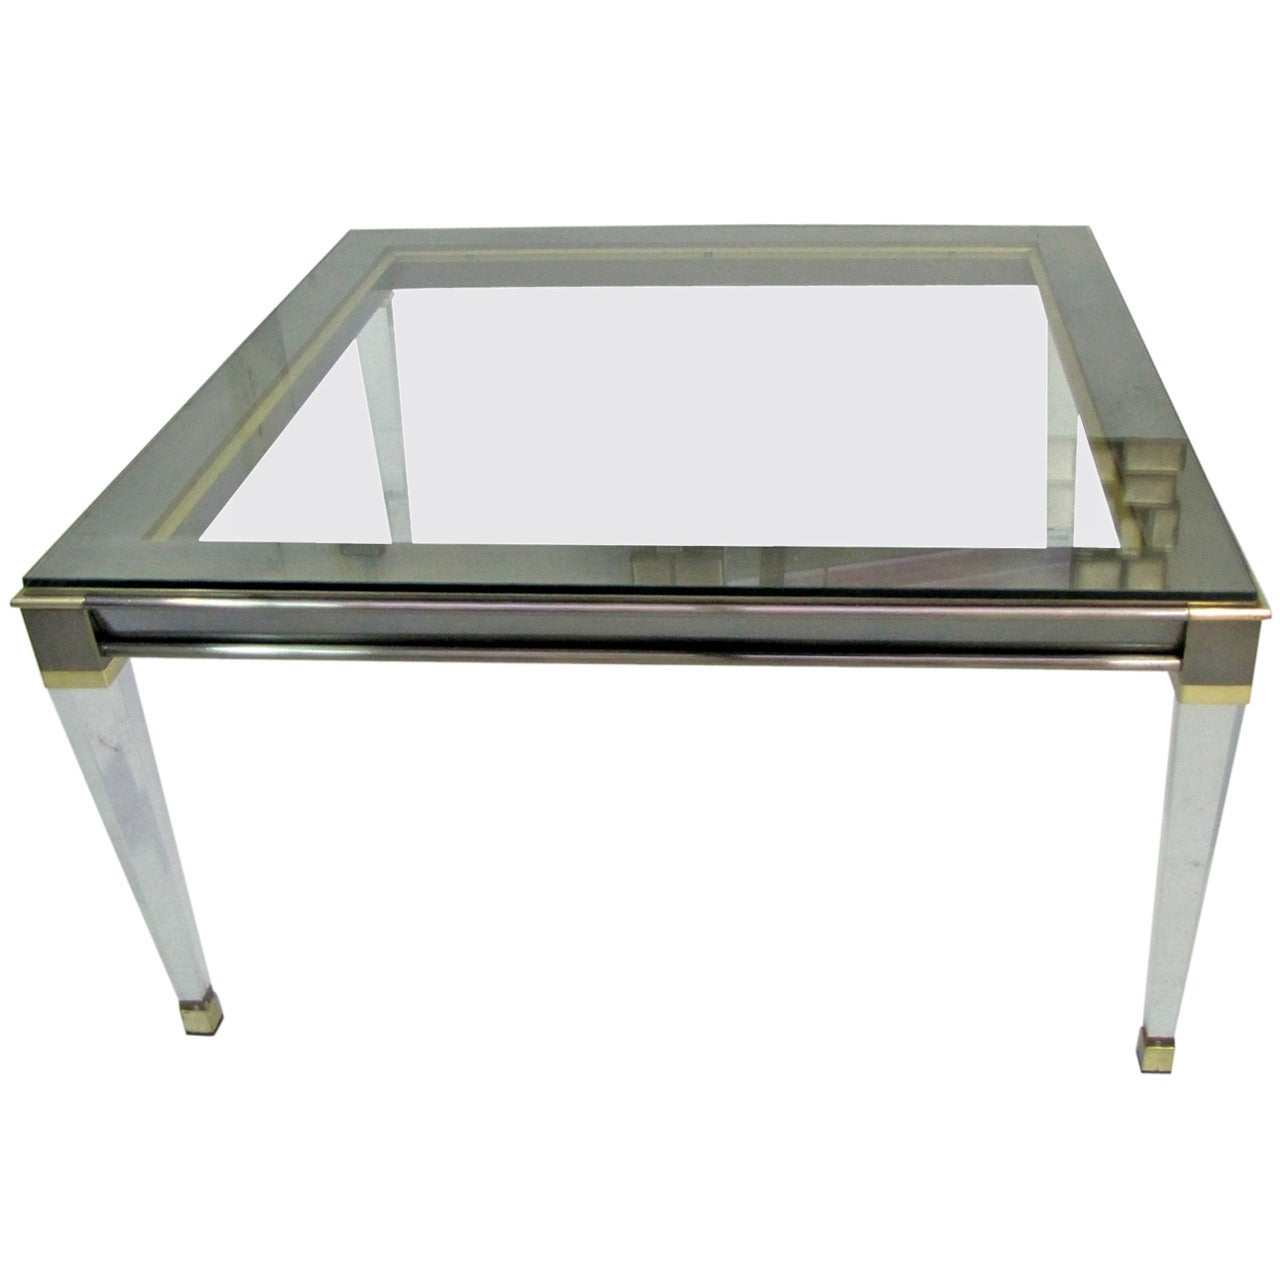 Coffee Table or End Table by Belgo Chrome, Belgium, circa 1970